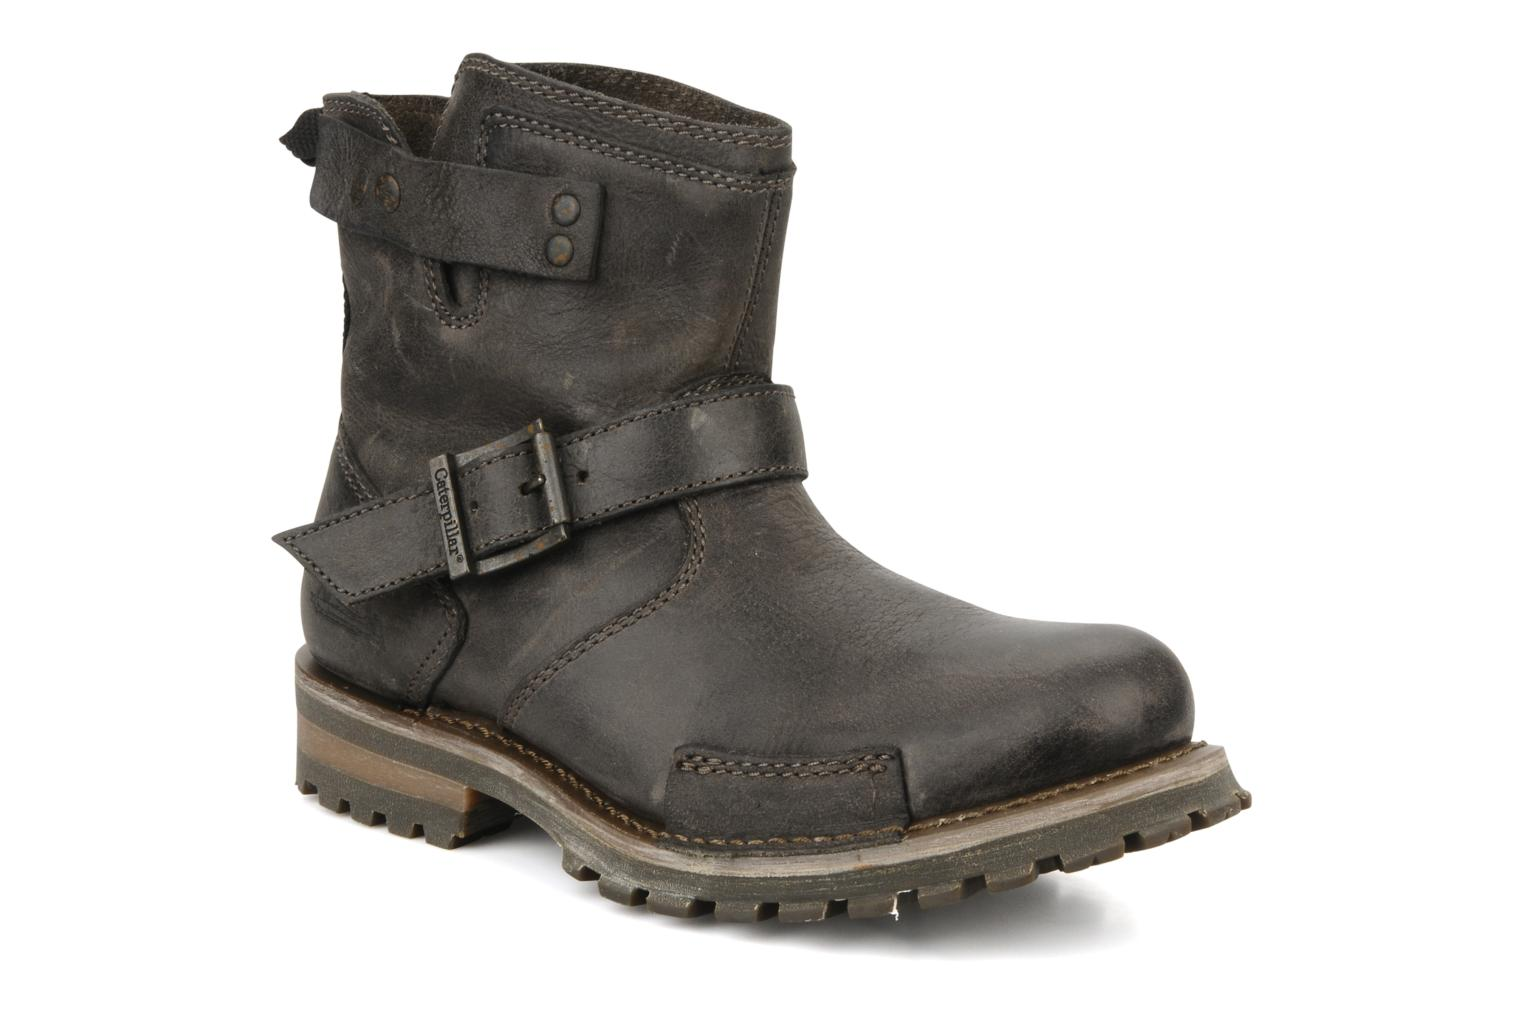 Caterpillar Vern Ankle Boots In Grey At Sarenza Co Uk 77128